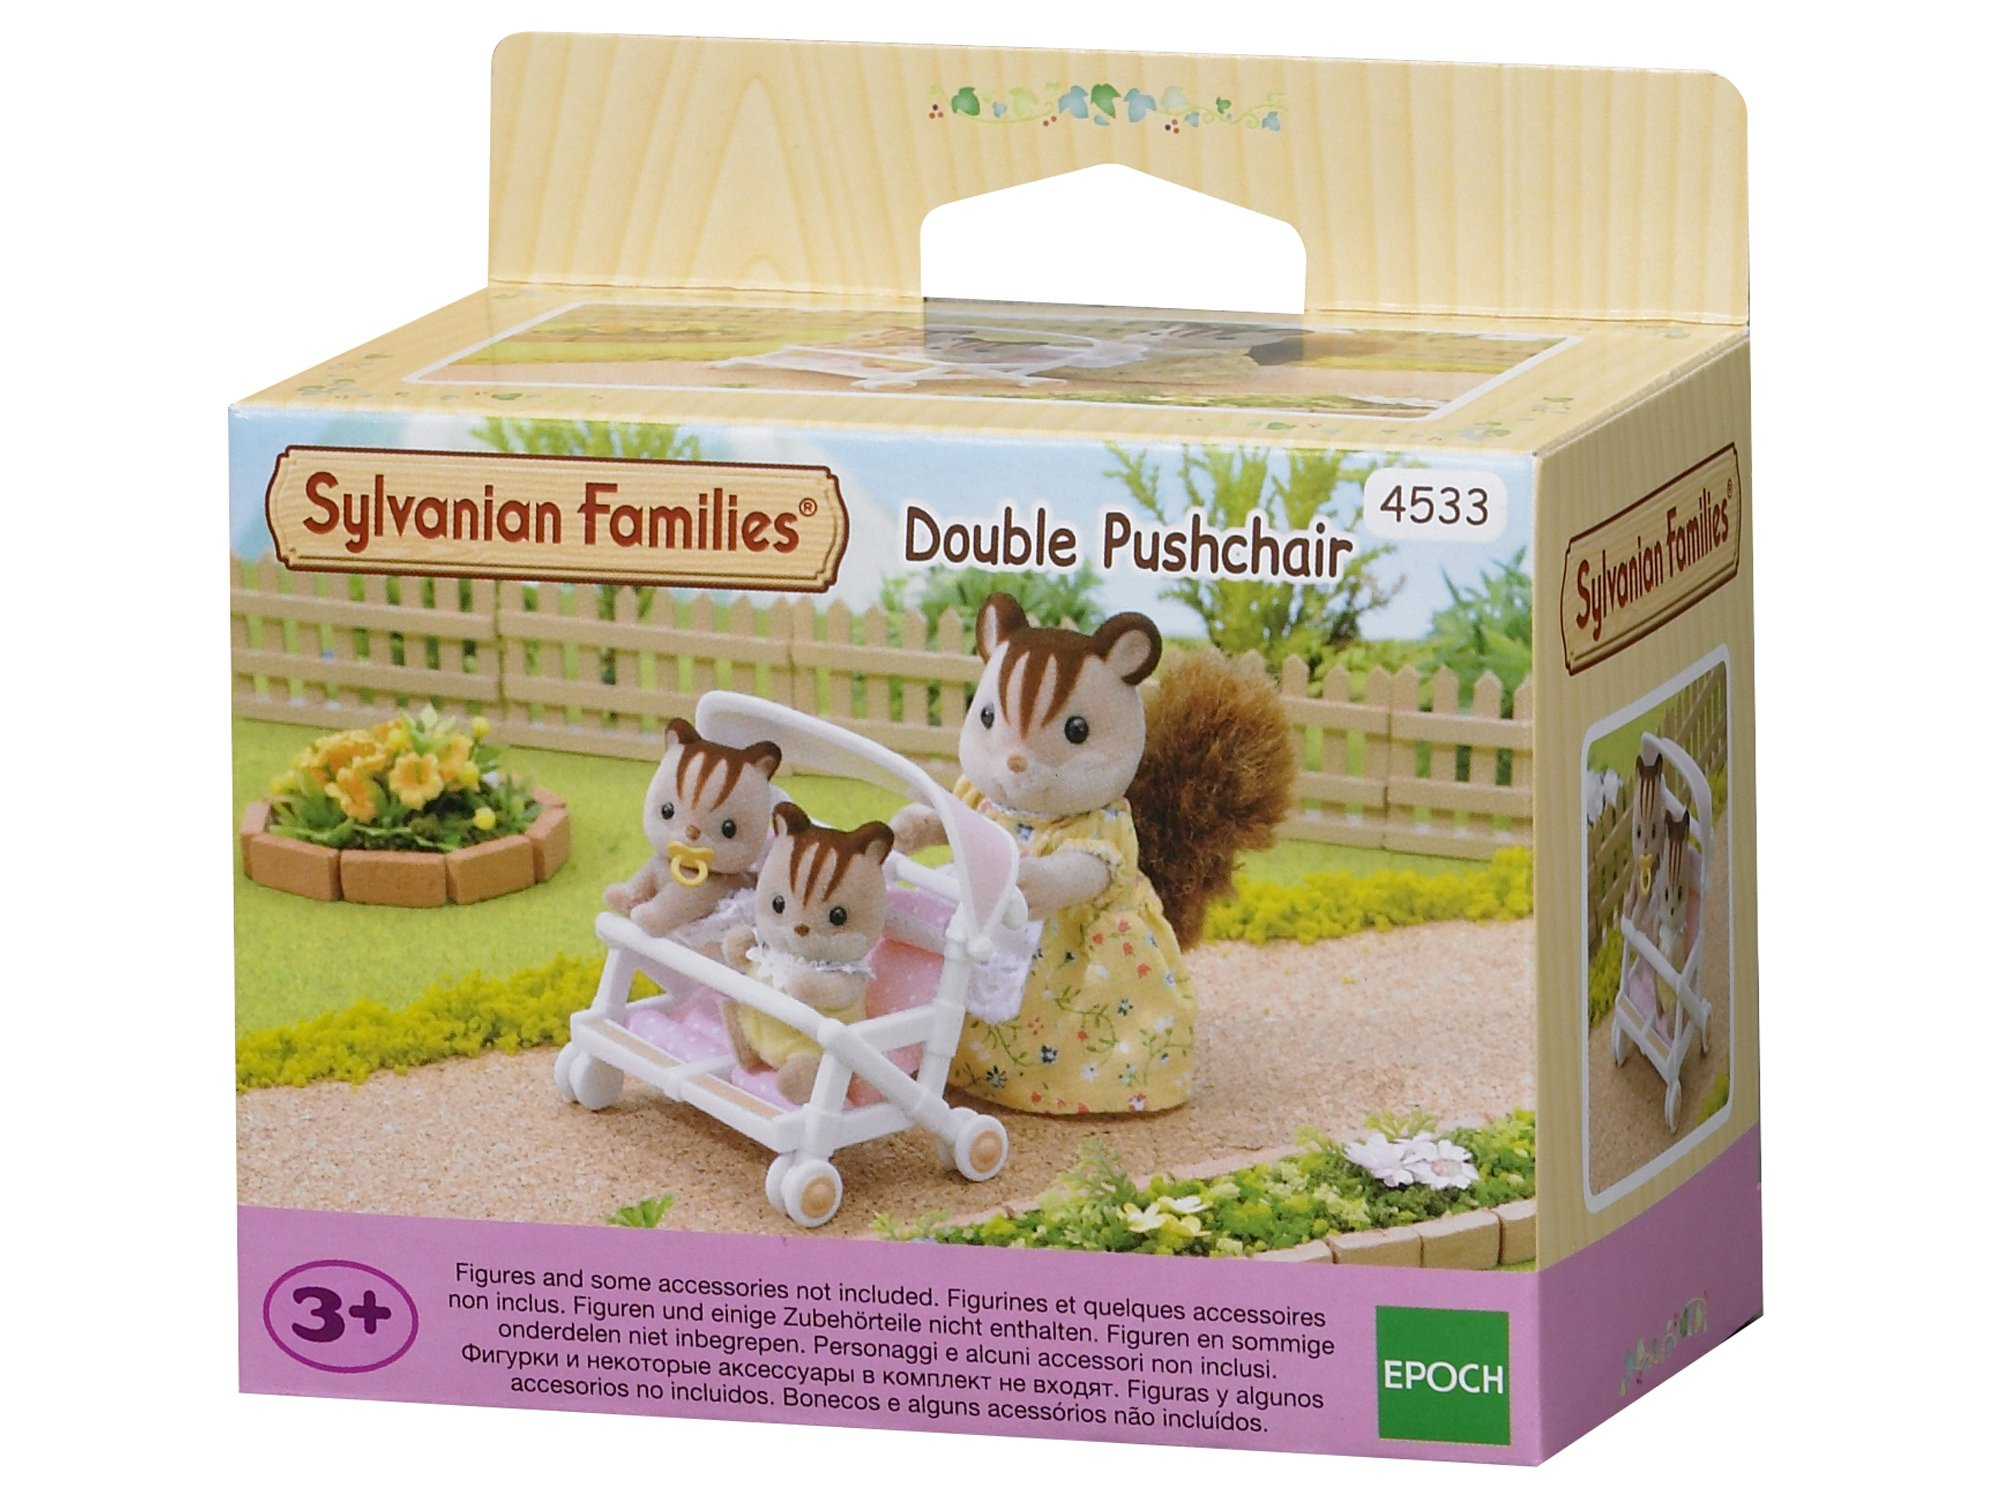 Sylvanian Families - Double Pushchair Sylvanian Families Accessory for your Sylvanian family home Pushchair for two babies Well-made with fine attention to detail 1